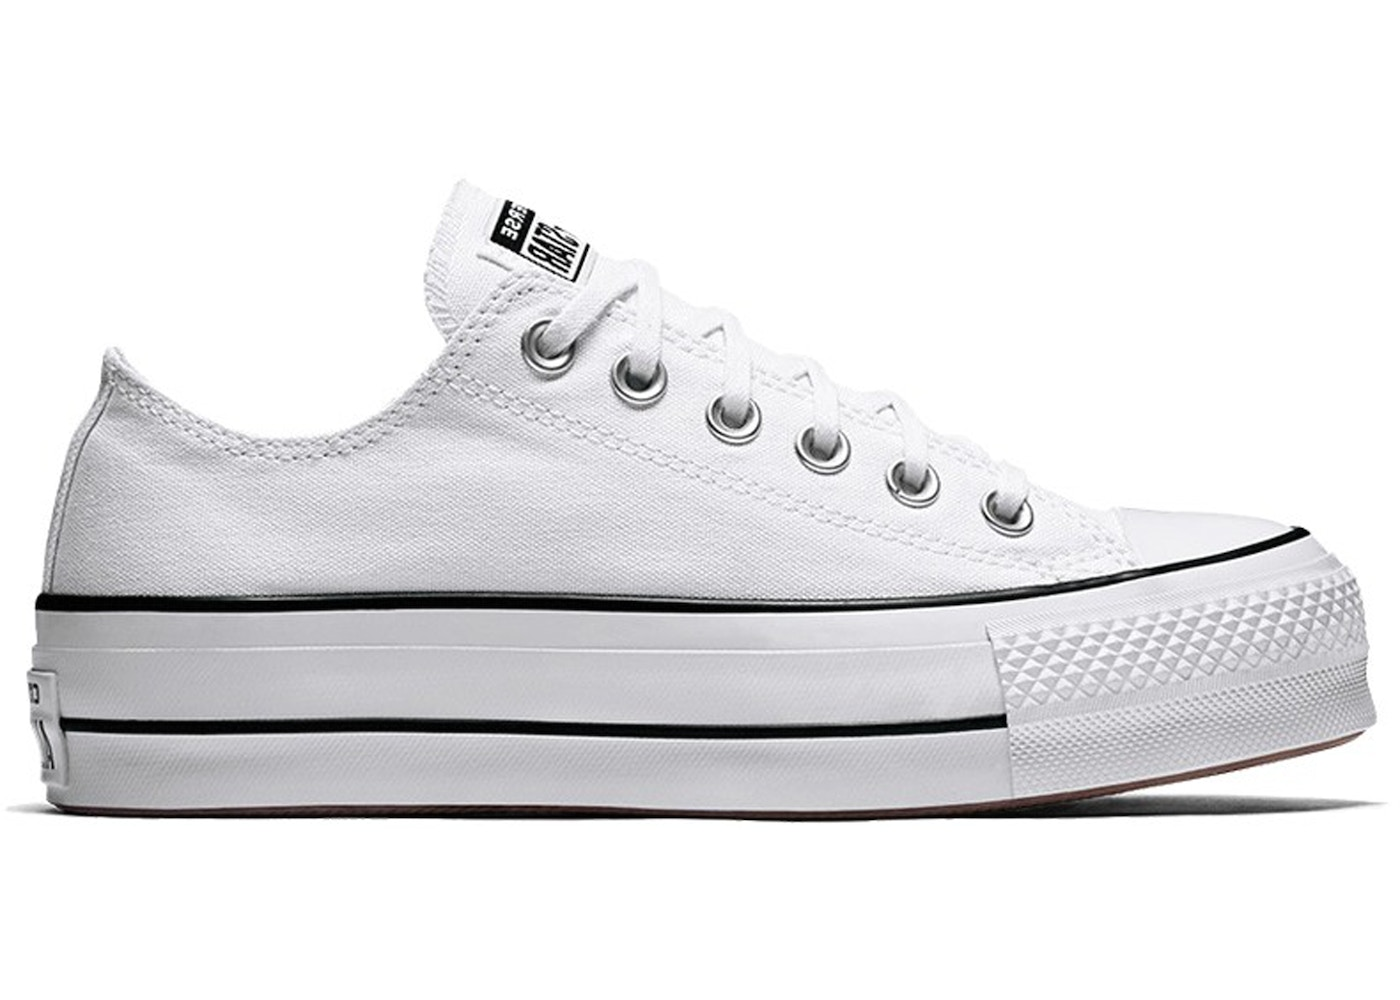 Converse Chuck Taylor All Star Lift Ox White Black W 560251c